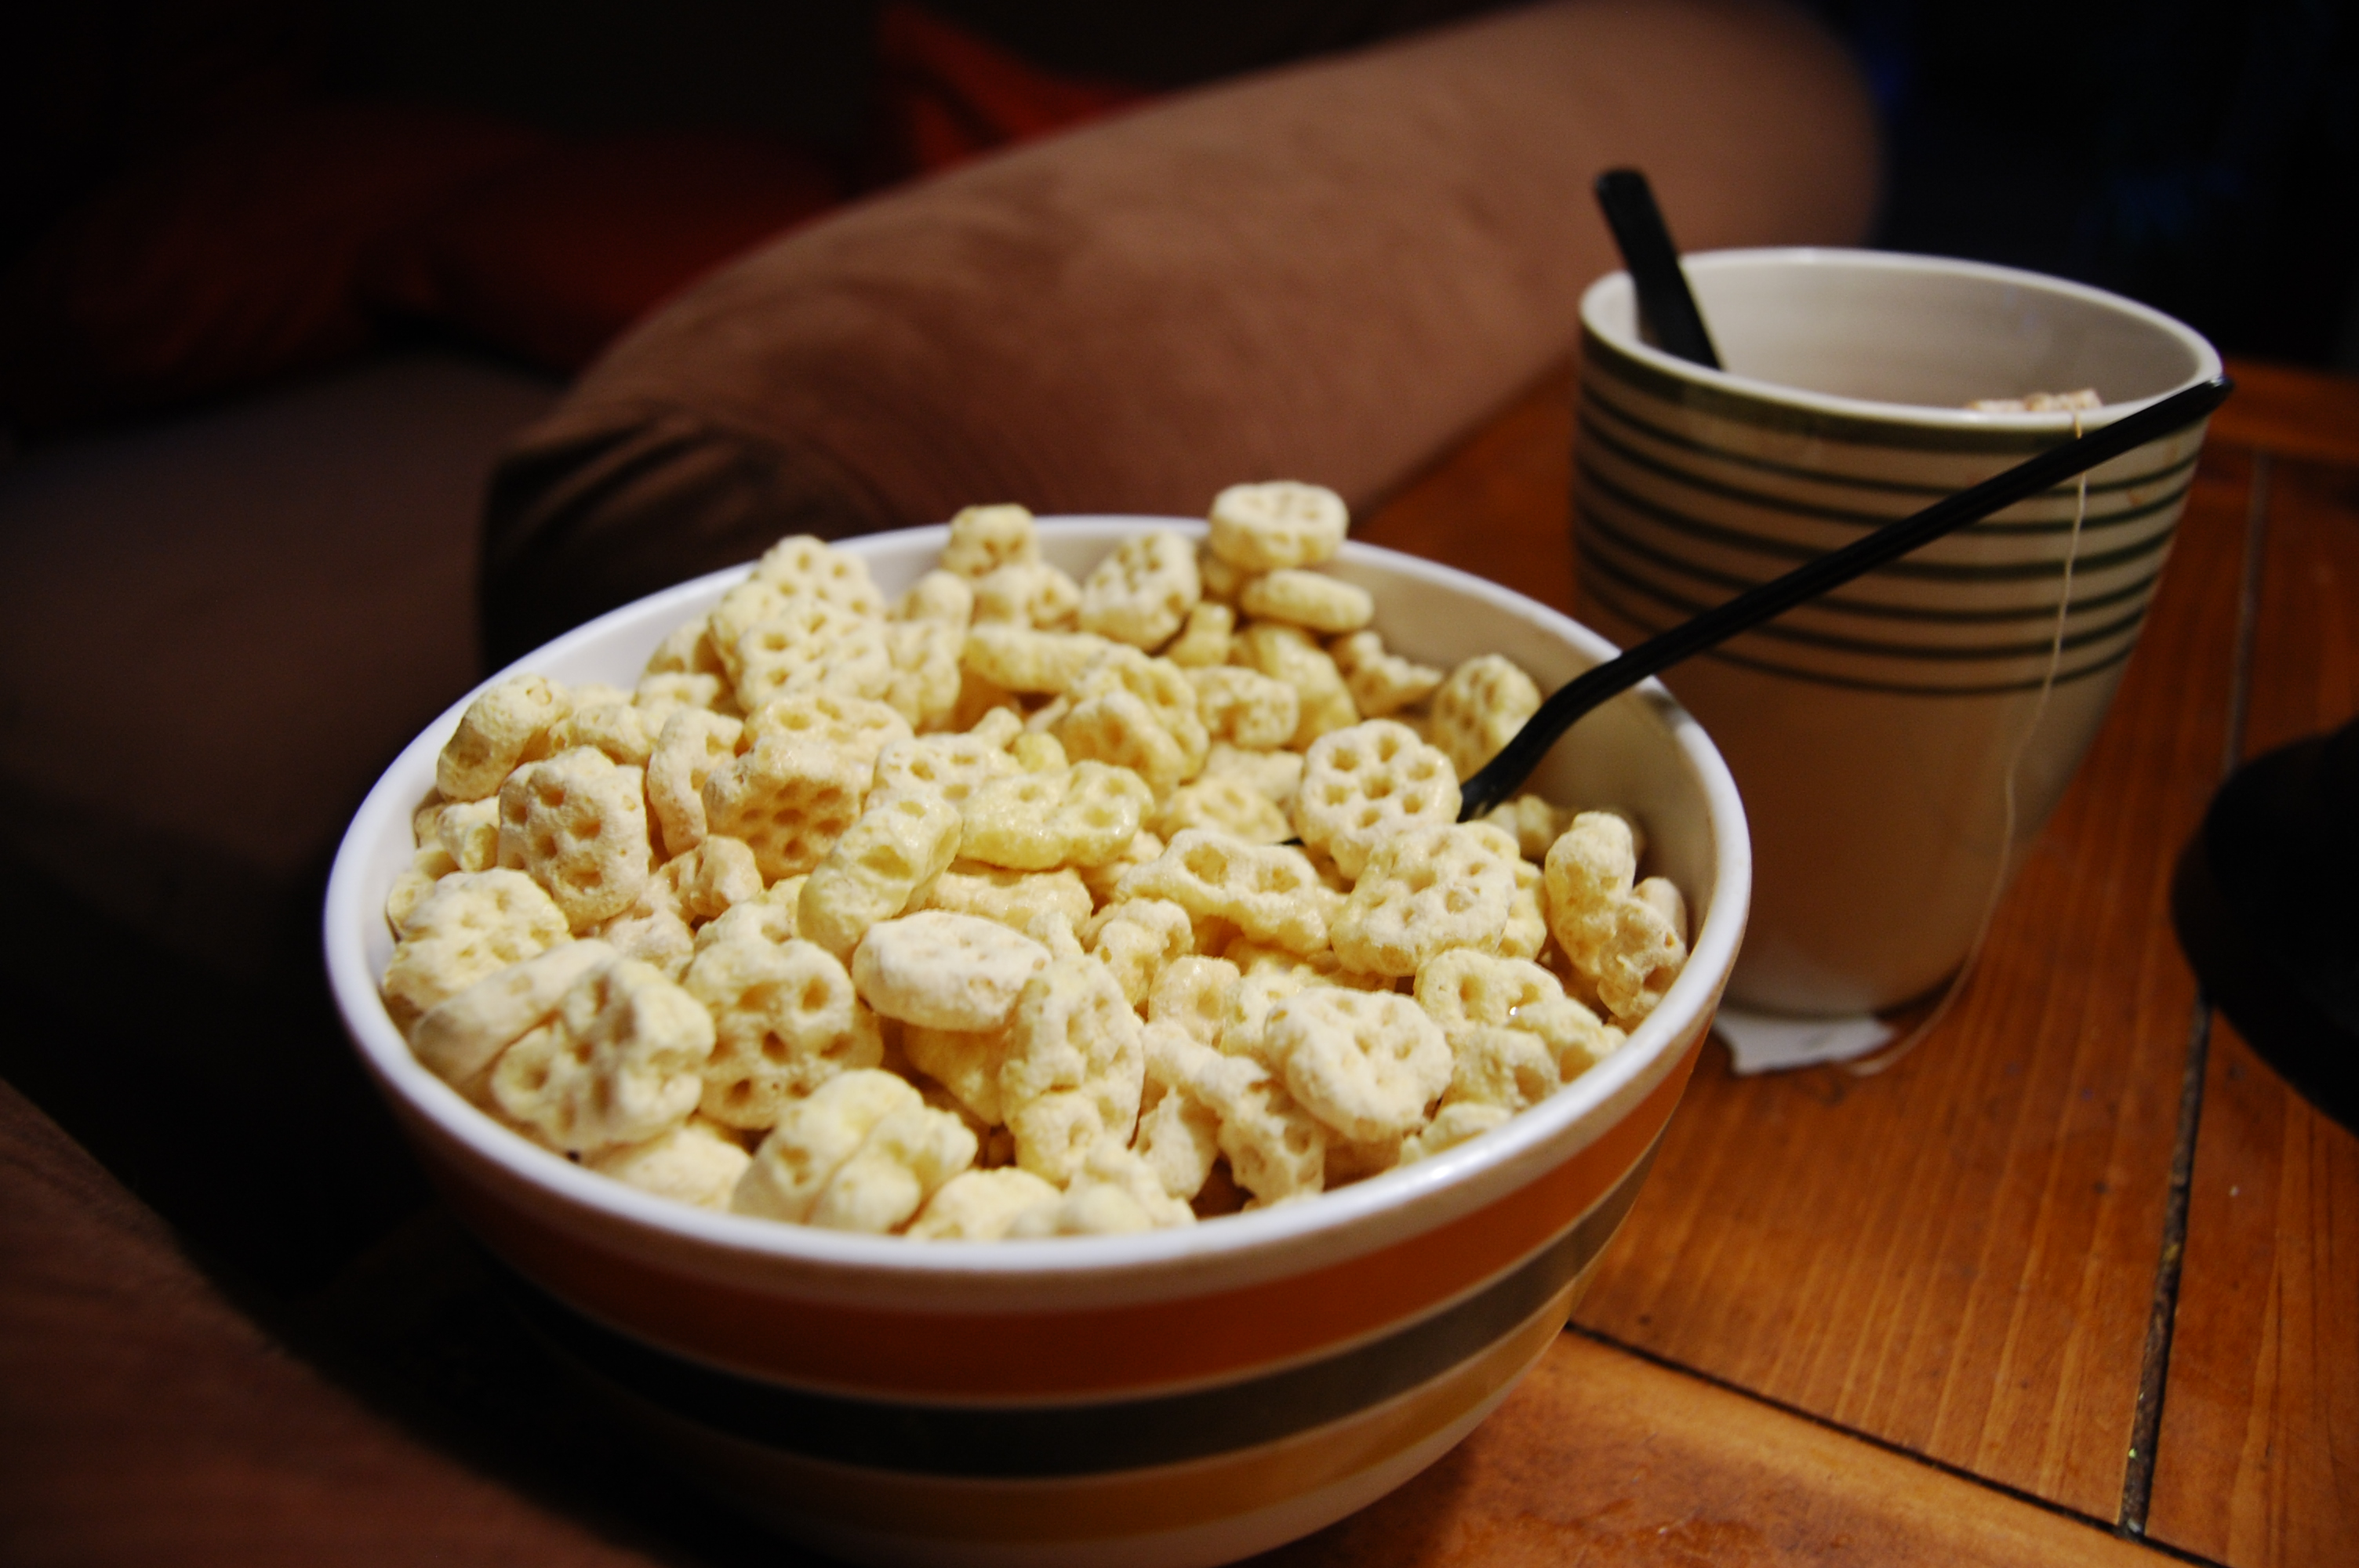 Honycomb_cereal.jpg